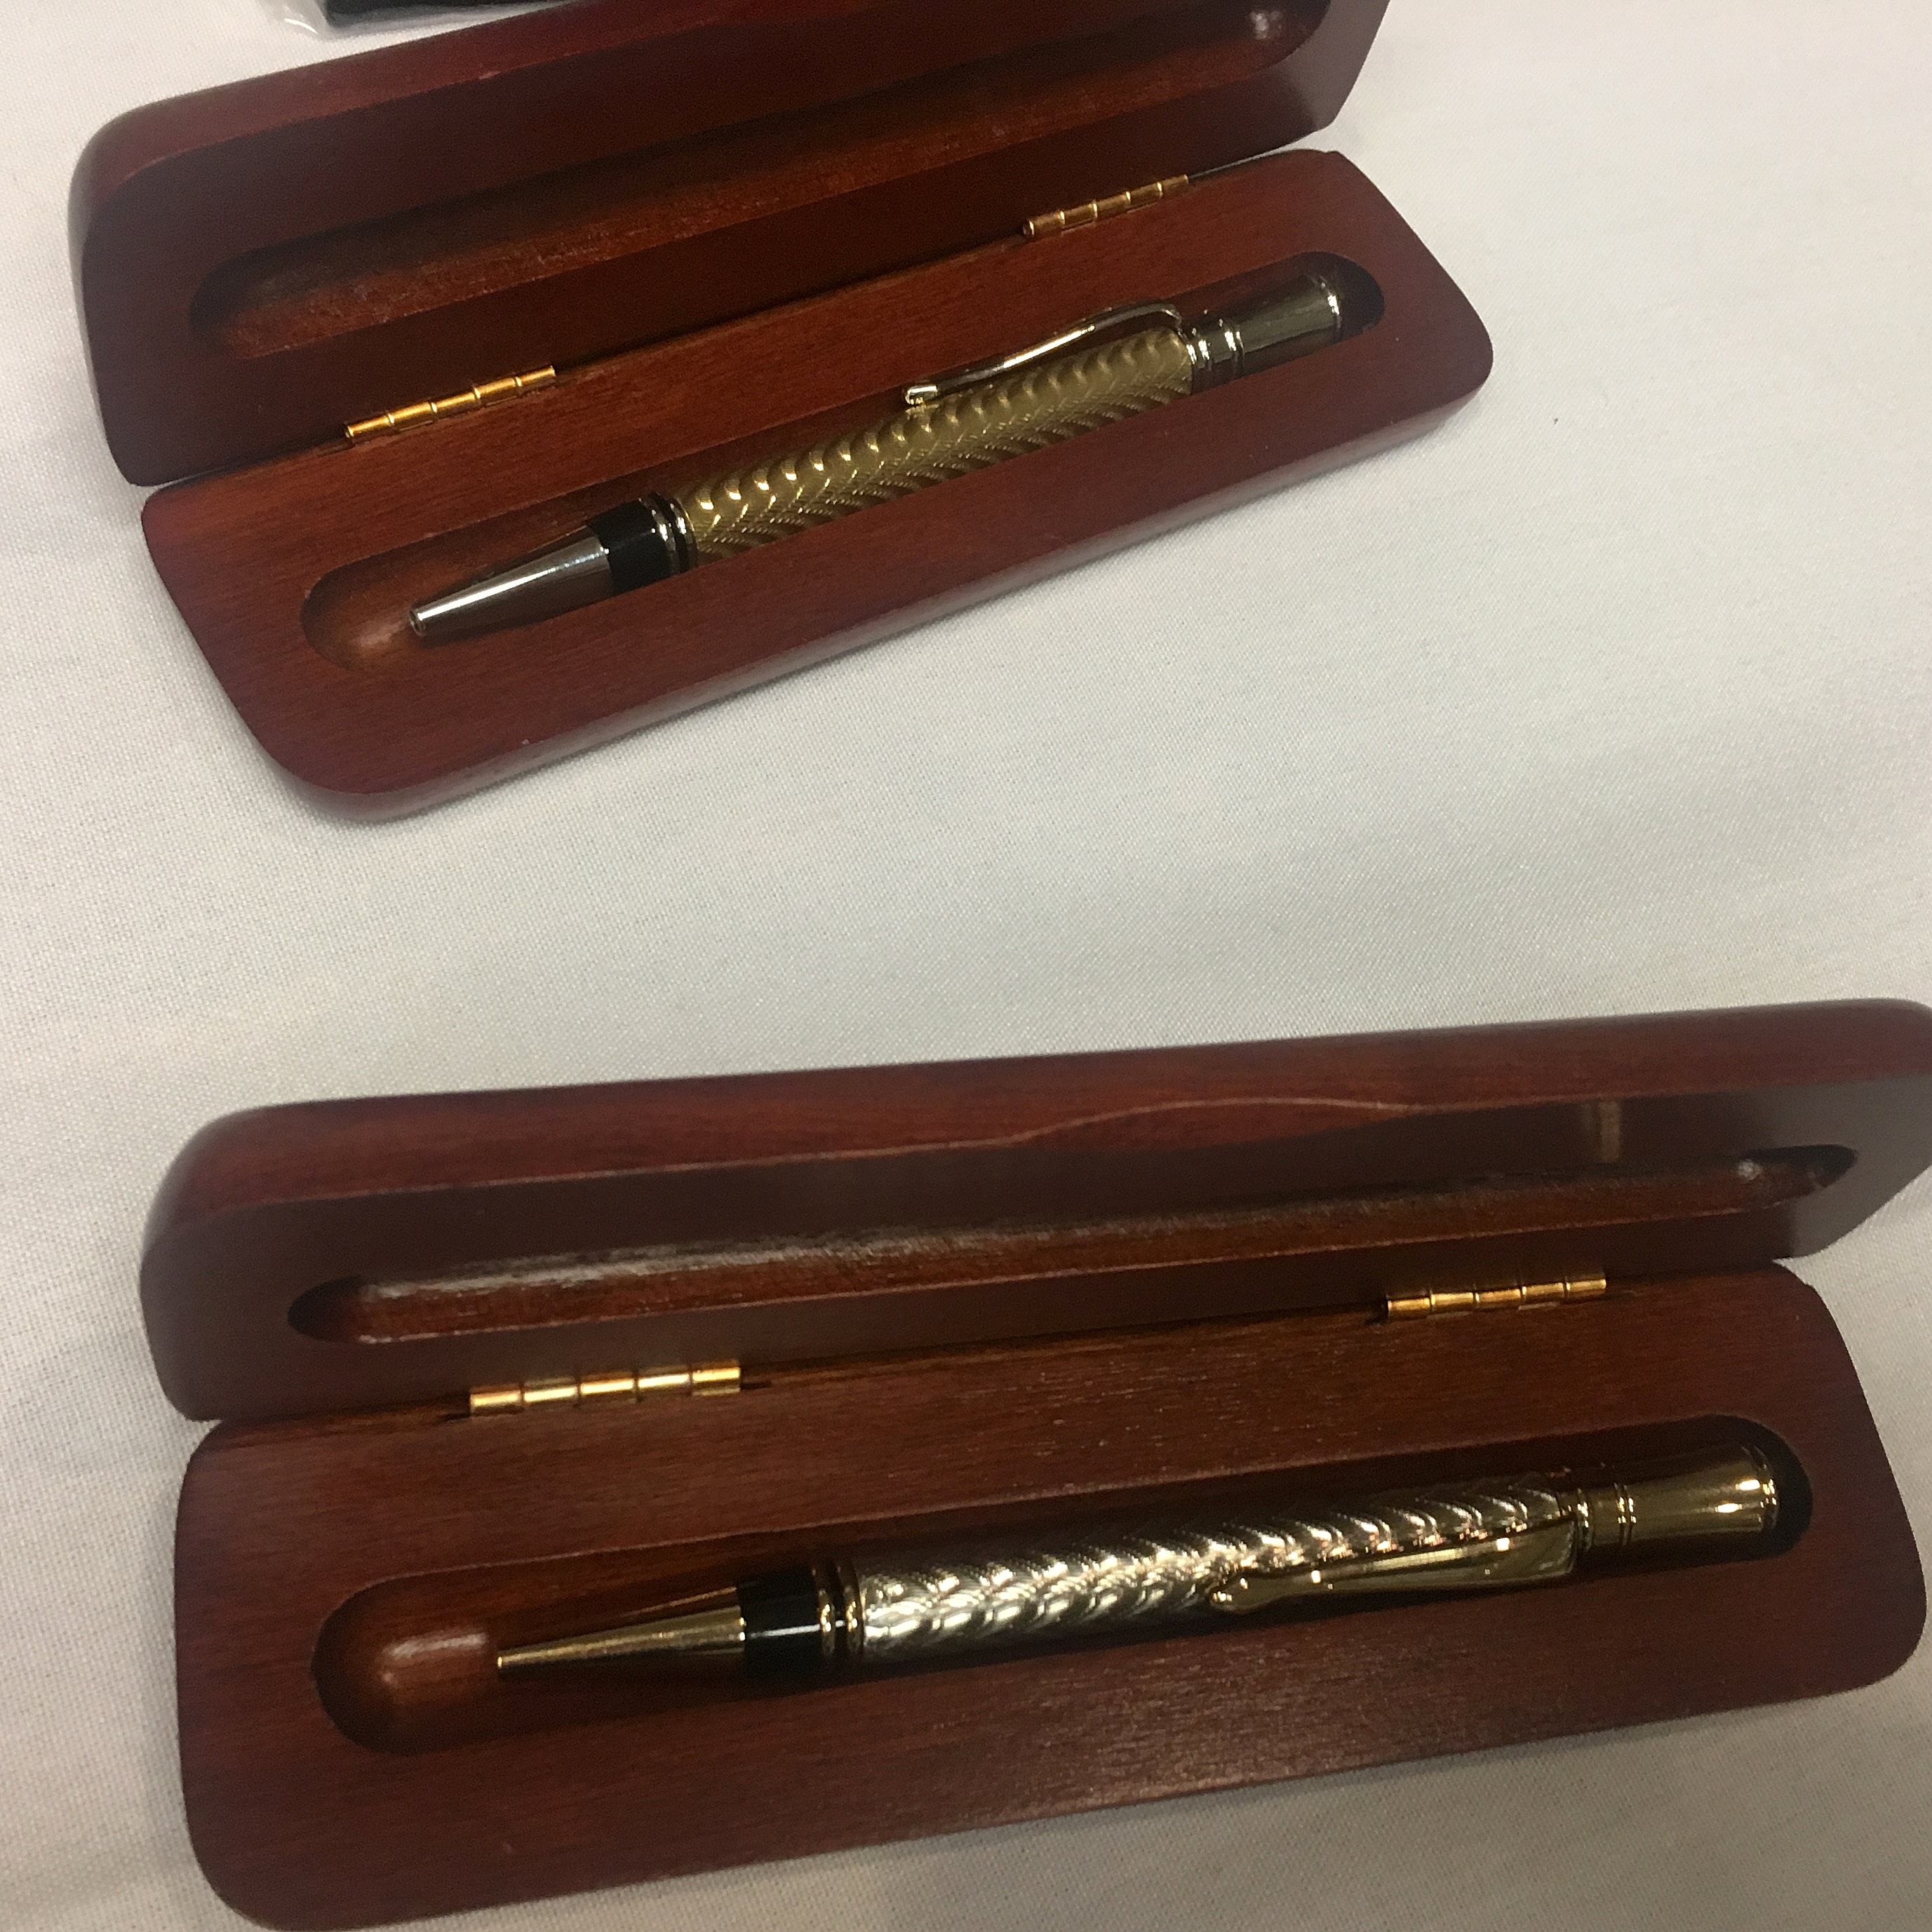 Two Beautiful pens.